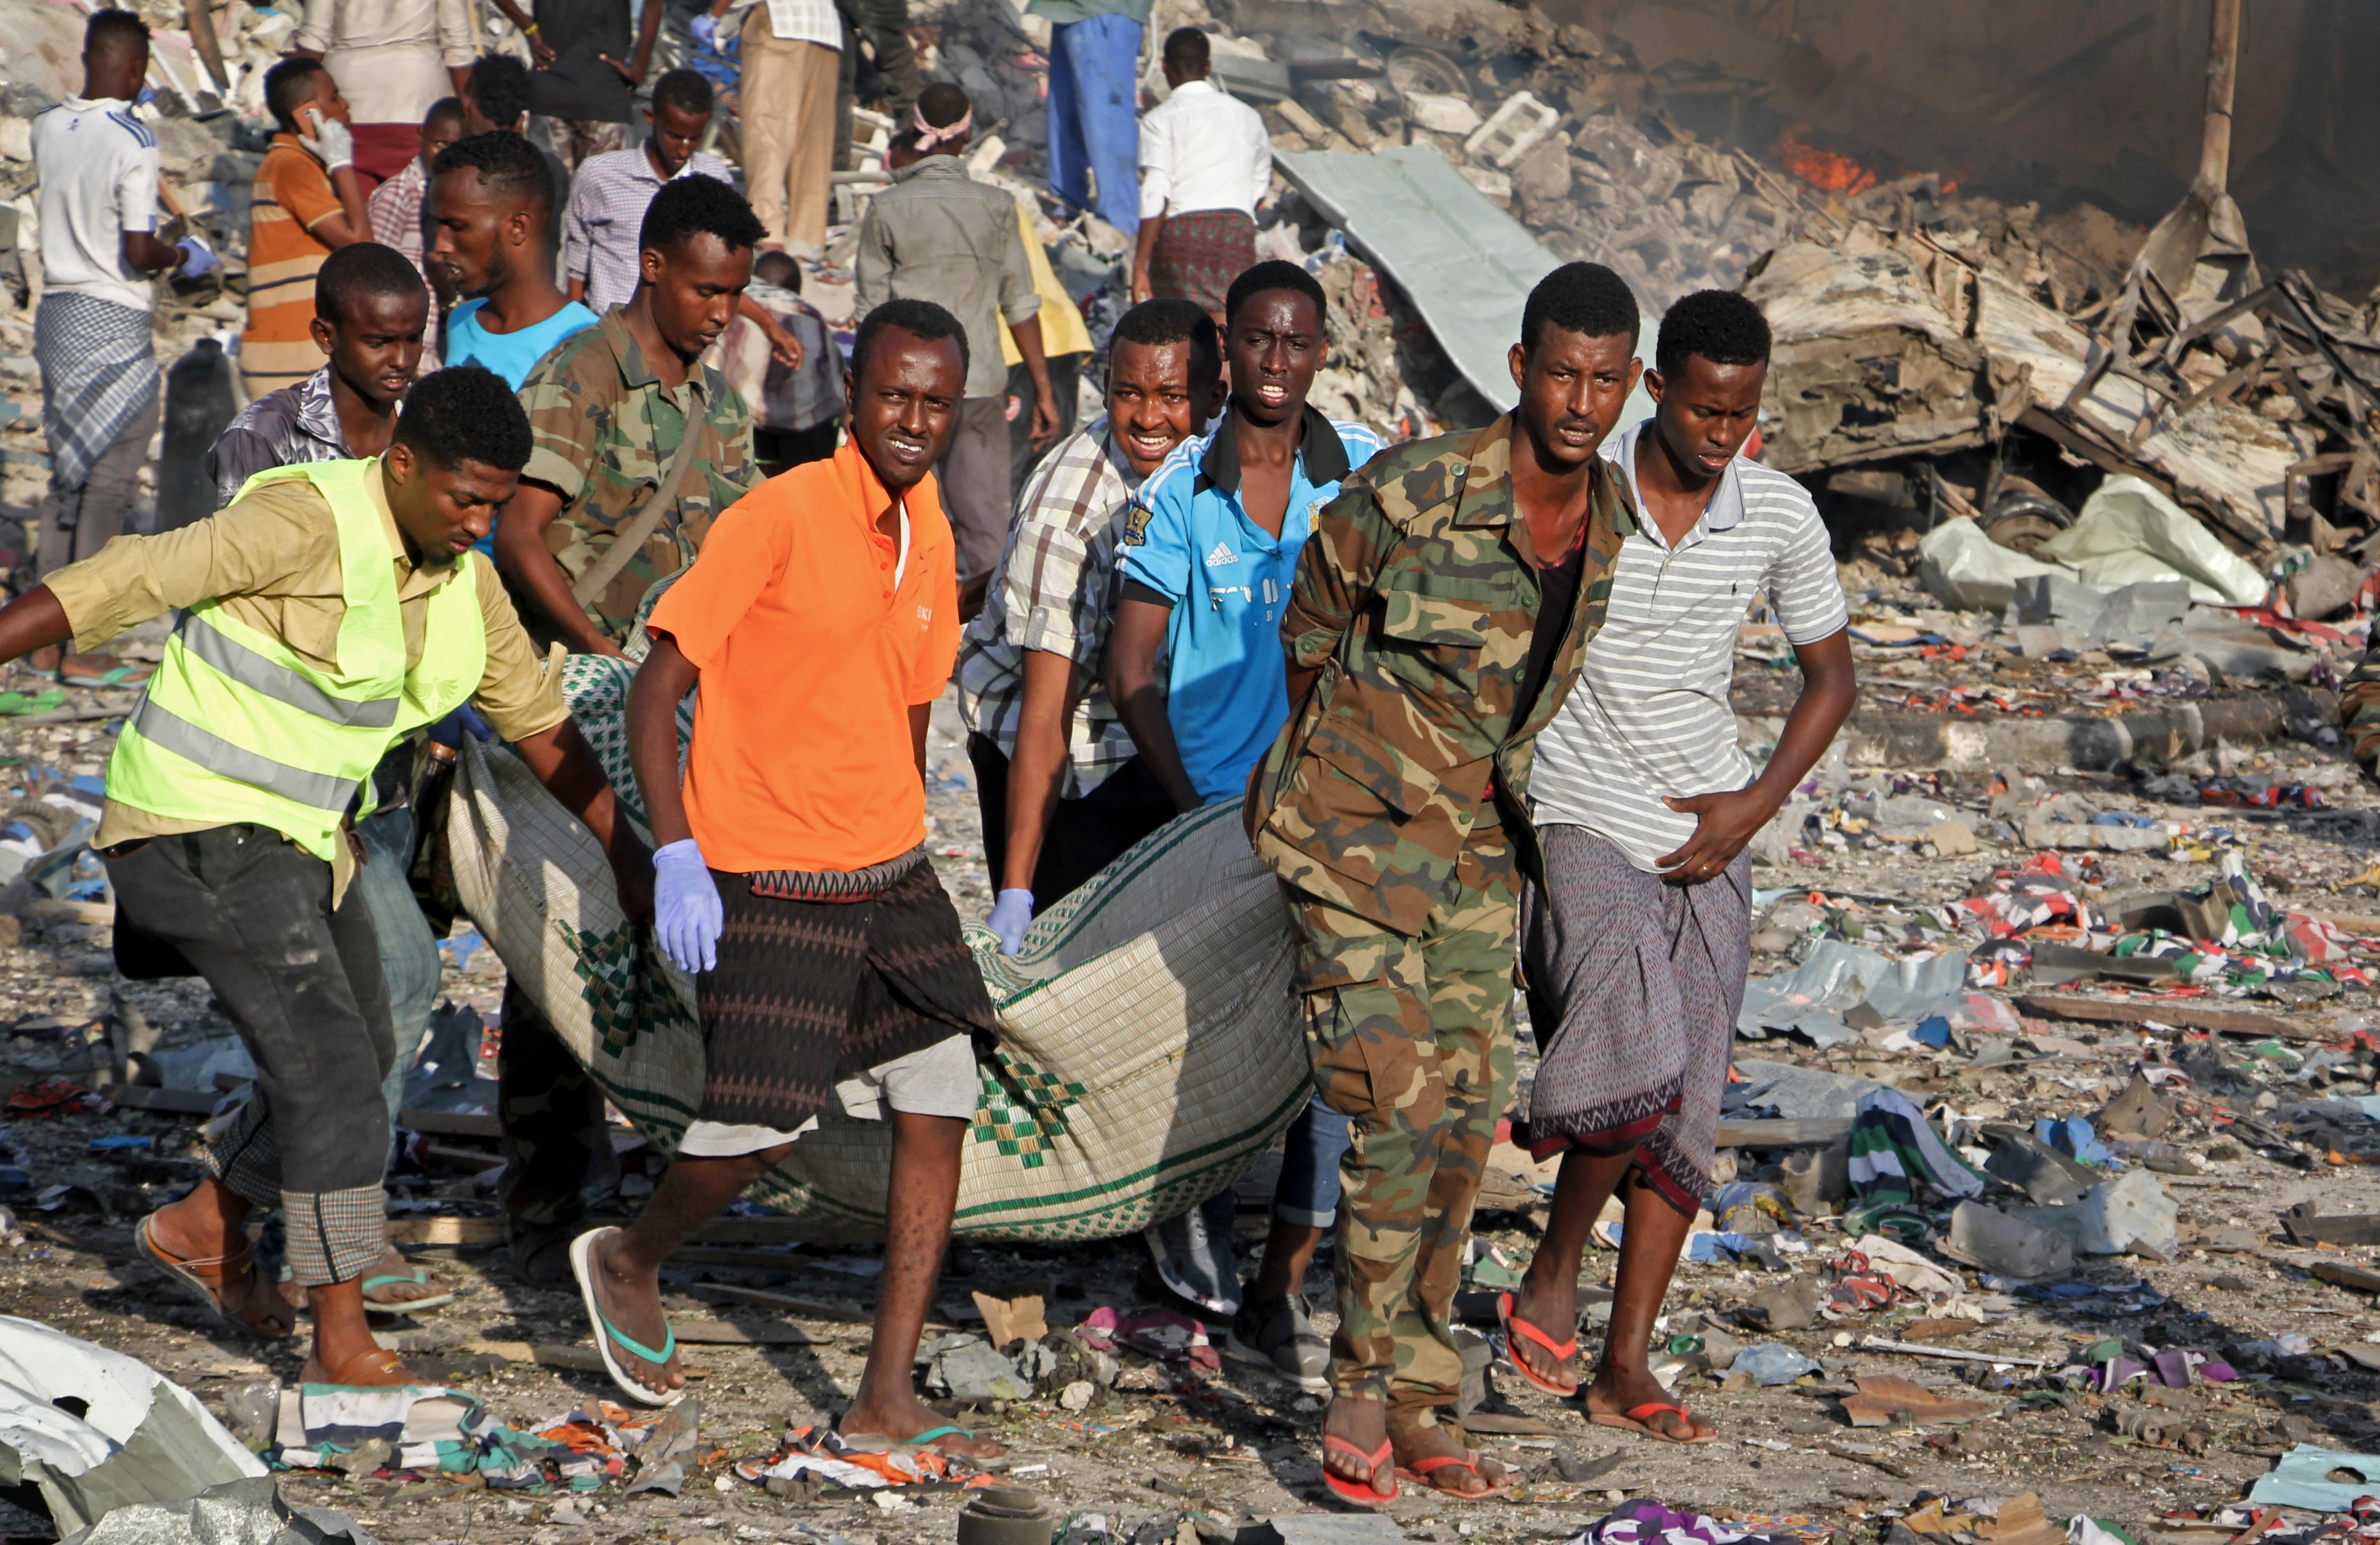 Somalis remove the body of a man killed in a blast in the capital Mogadishu, Somalia Saturday, Oct. 14, 2017. A huge explosion from a truck bomb has killed at least 20 people in Somalia's capital, police said Saturday, as shaken residents called it the most powerful blast they'd heard in years. (AP Photo/Farah Abdi Warsameh)